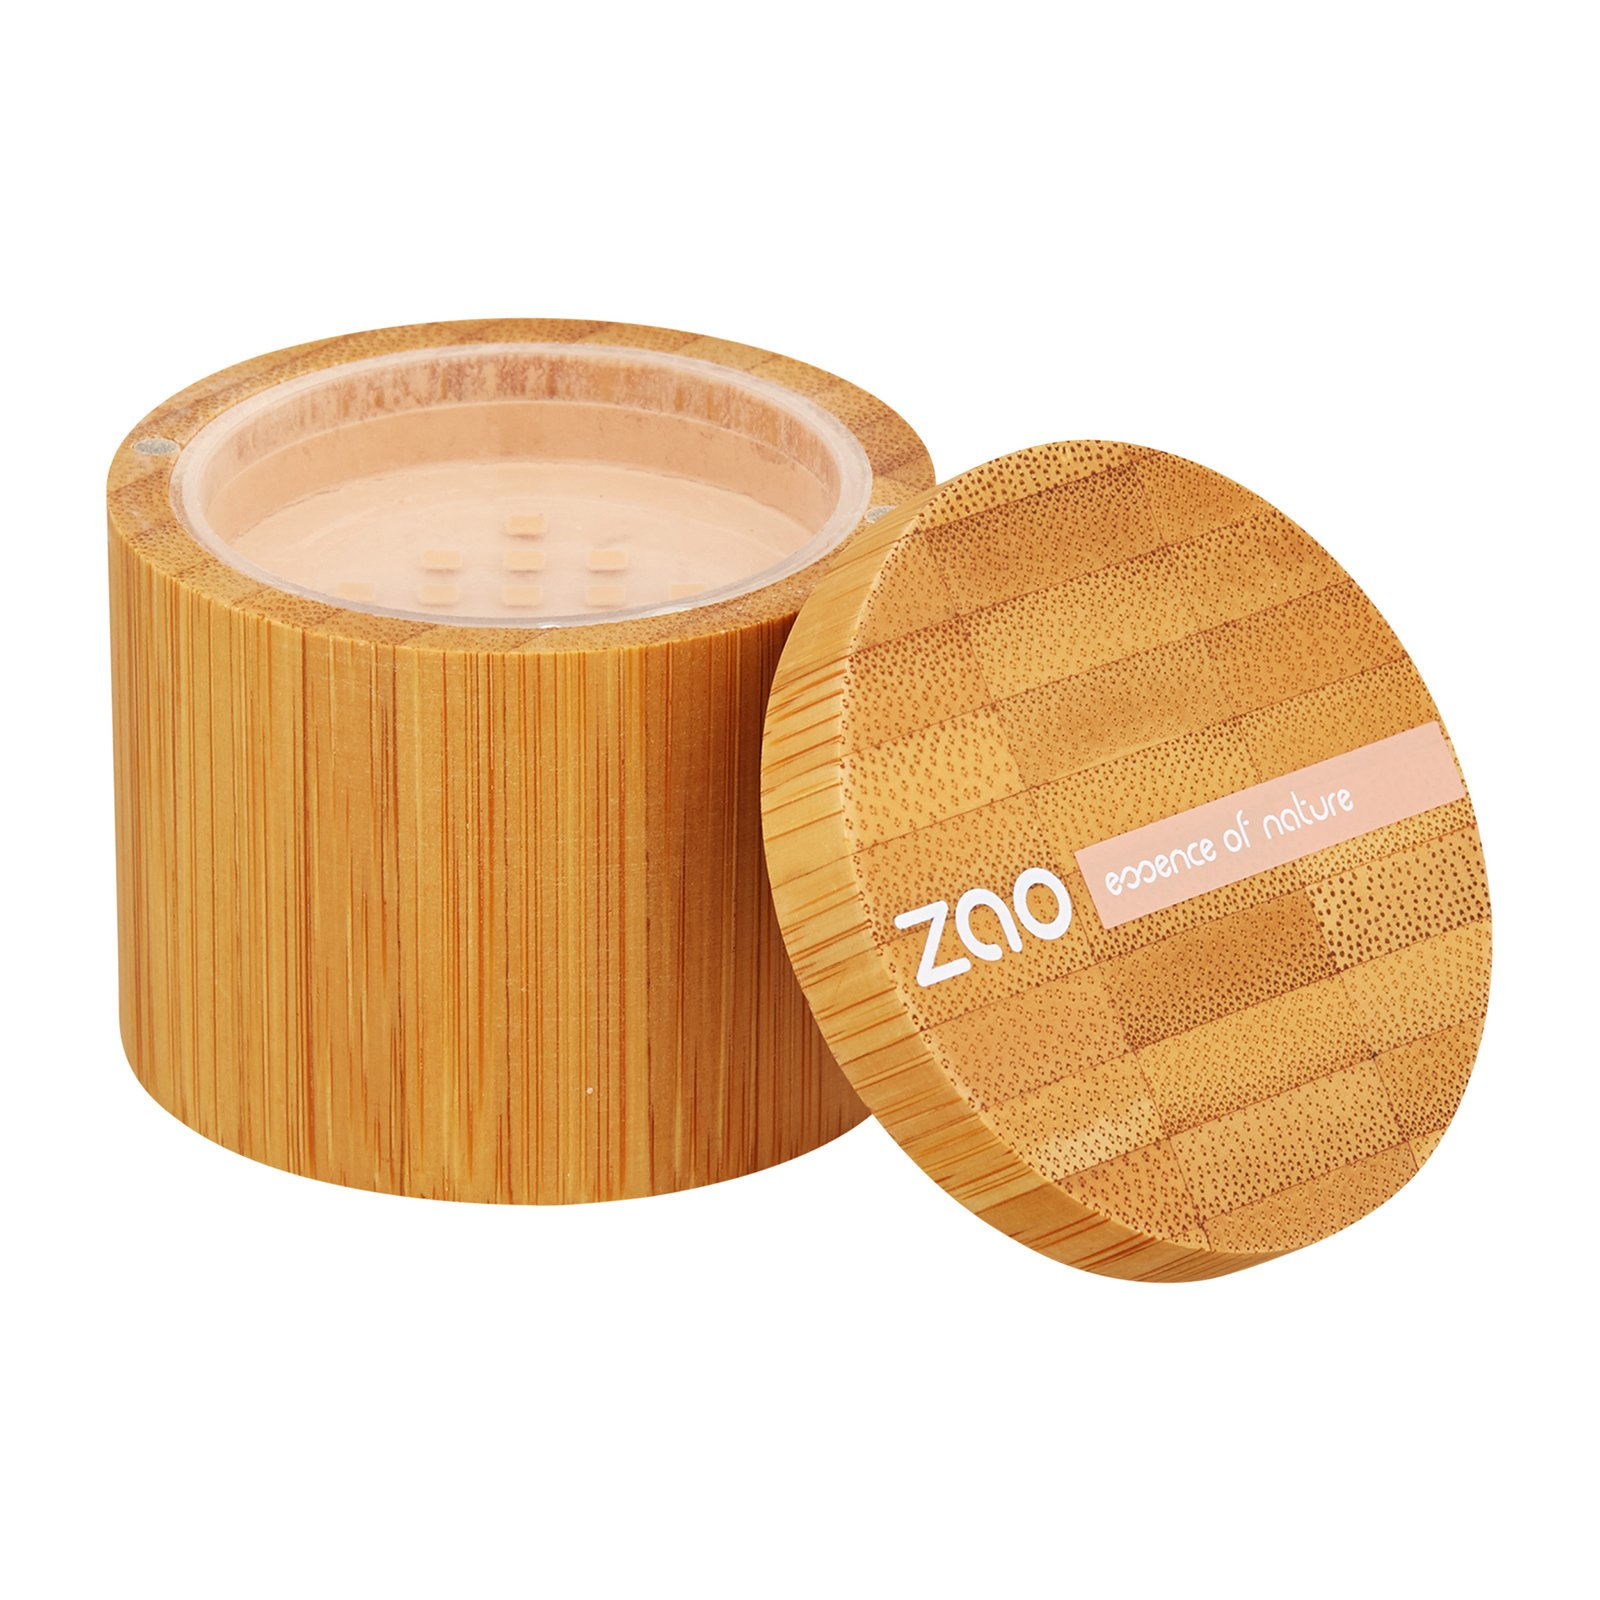 ZAO  Mineral Silk Mineral Powder Foundation 501 Clear Beige, 0.53oz, 15g from Cosme-De.com